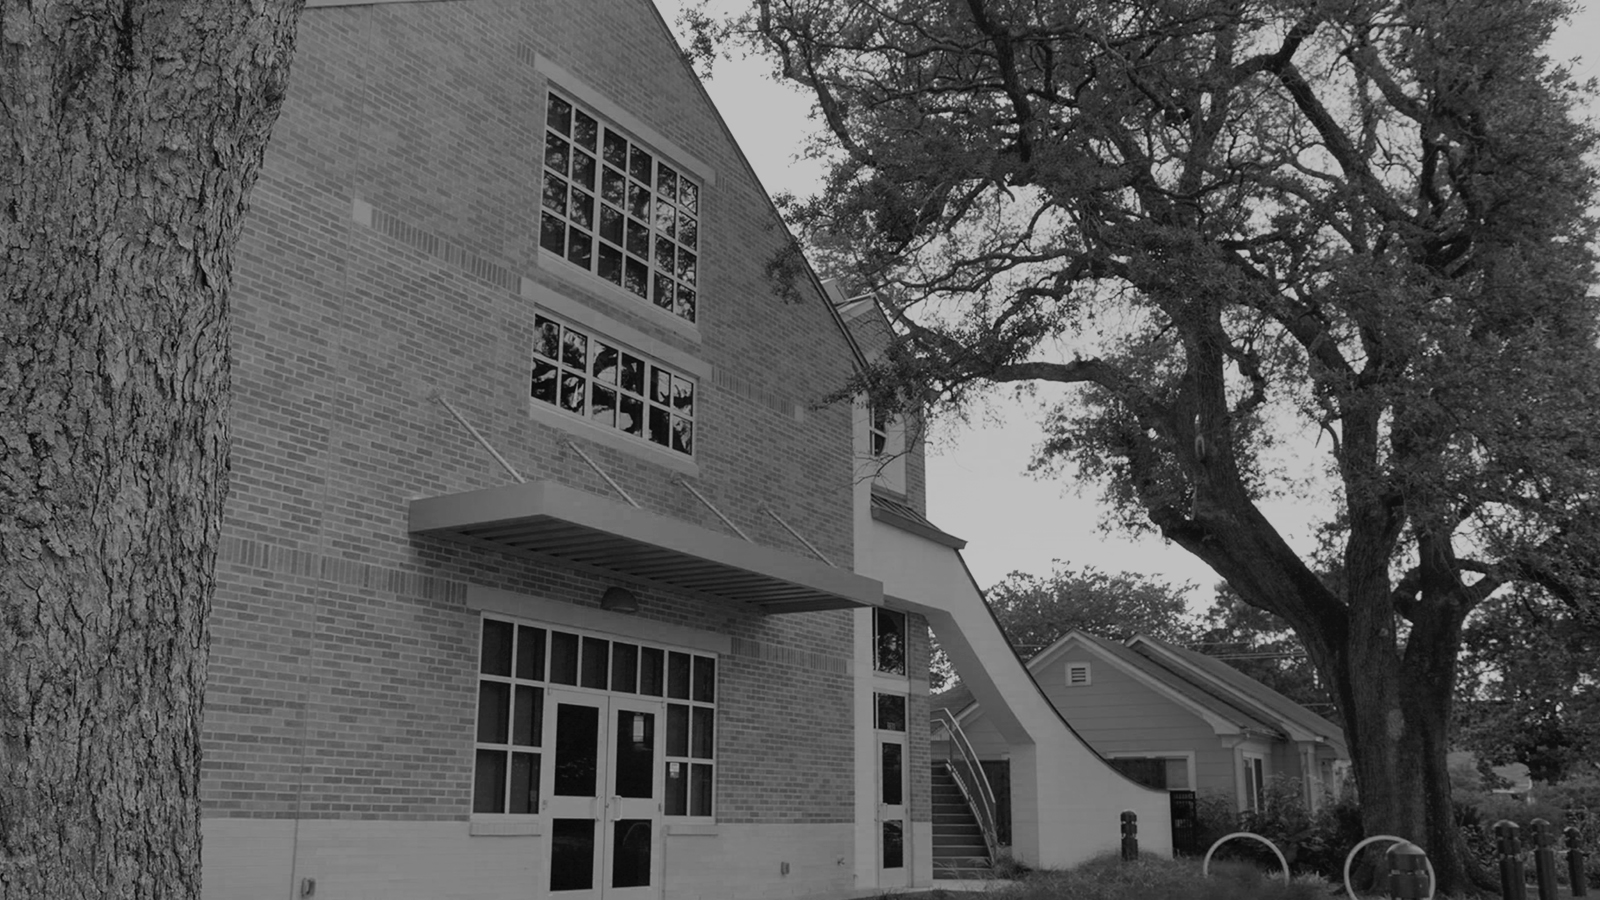 stylized, B&W photo of TRACY DESIGN STUDIO - WEST UNIVERSITY BAPTIST CHURCH YOUTH MINISTRY BUILDING